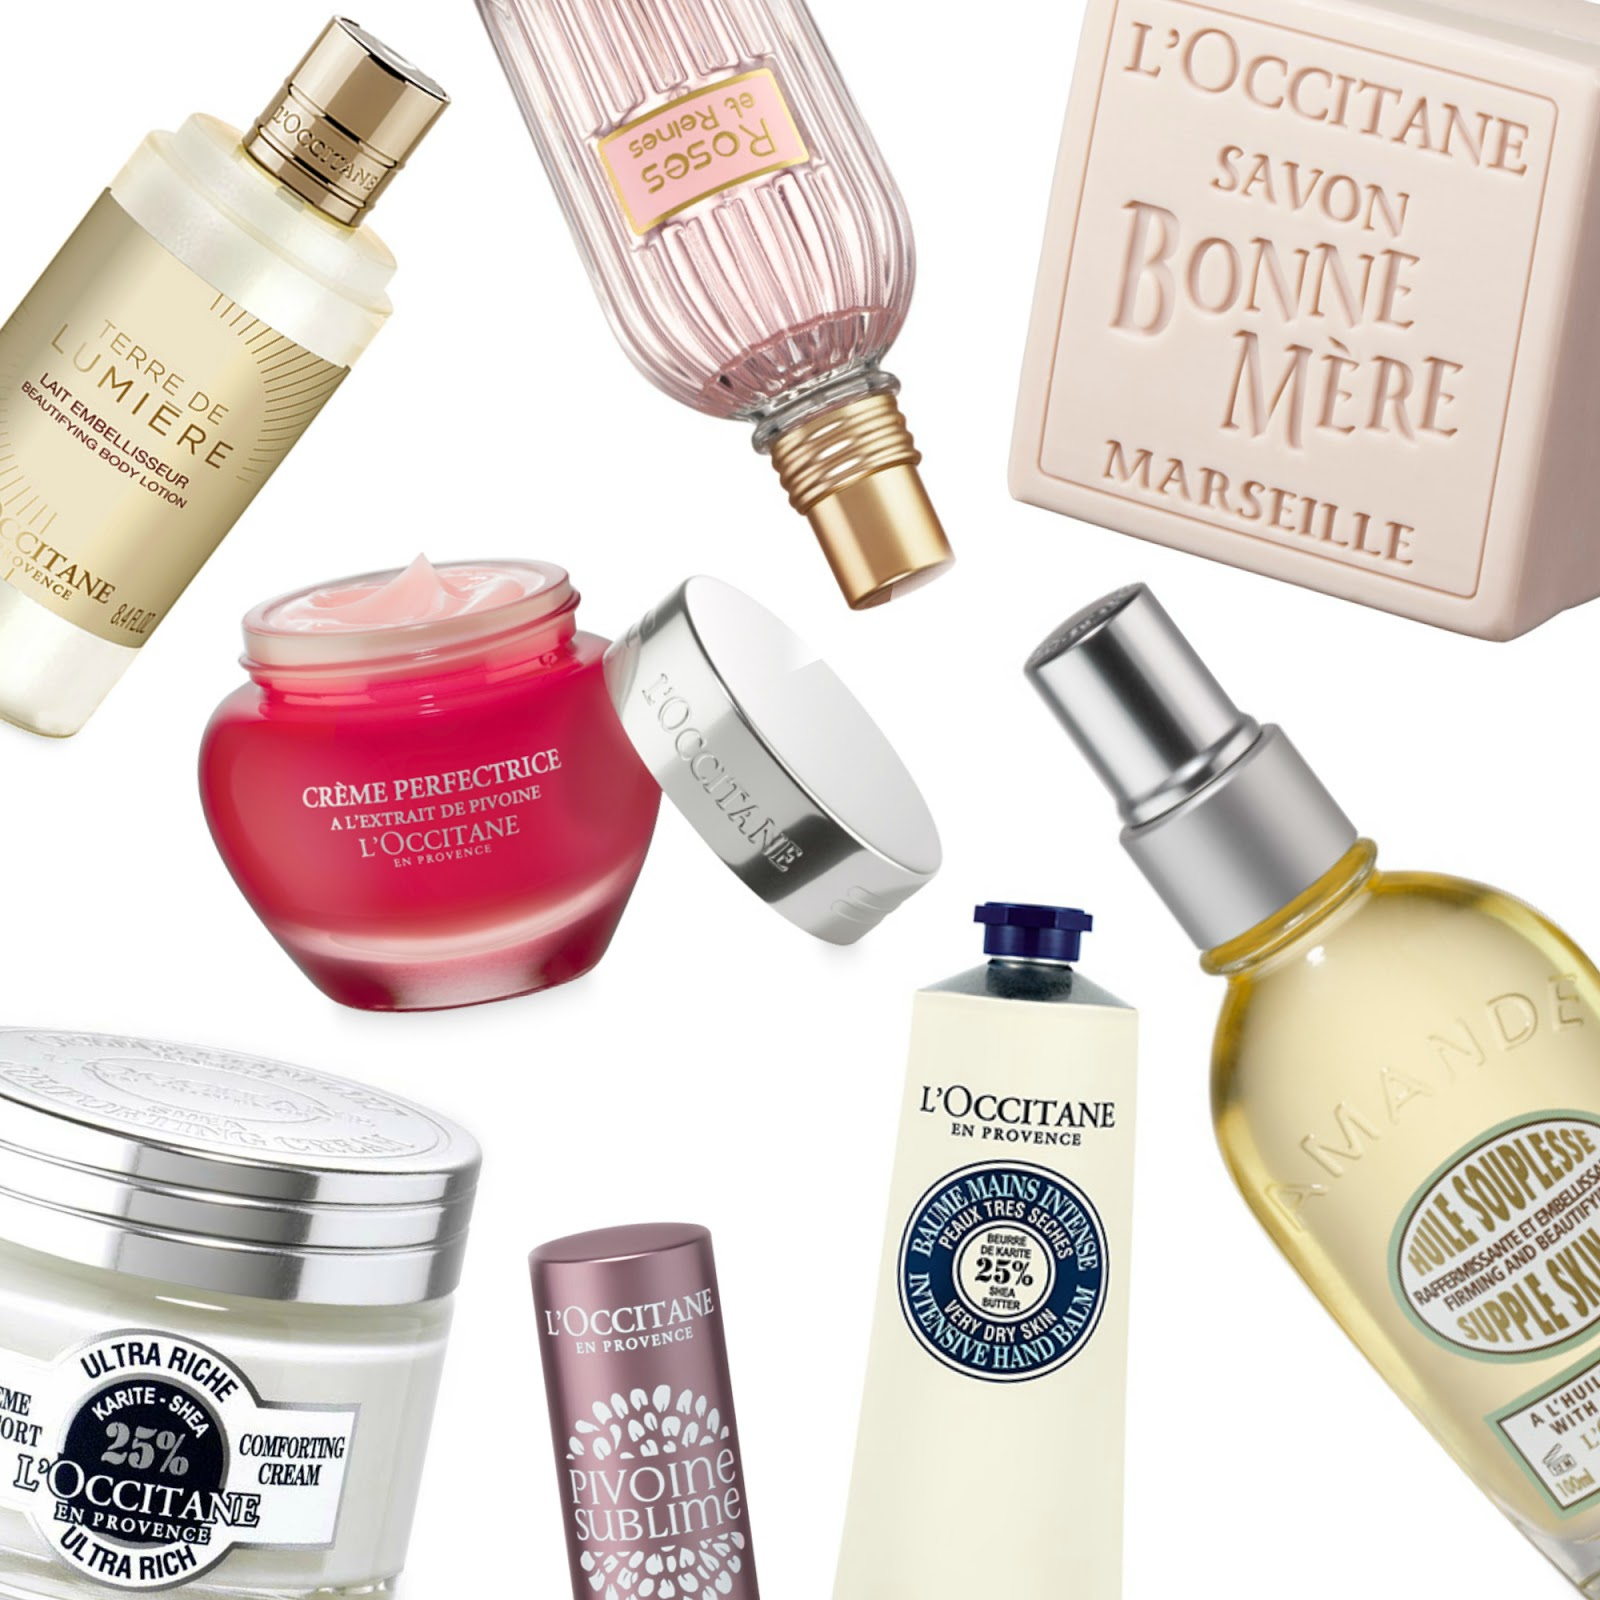 l'occitane summer gift set guide for all budgets